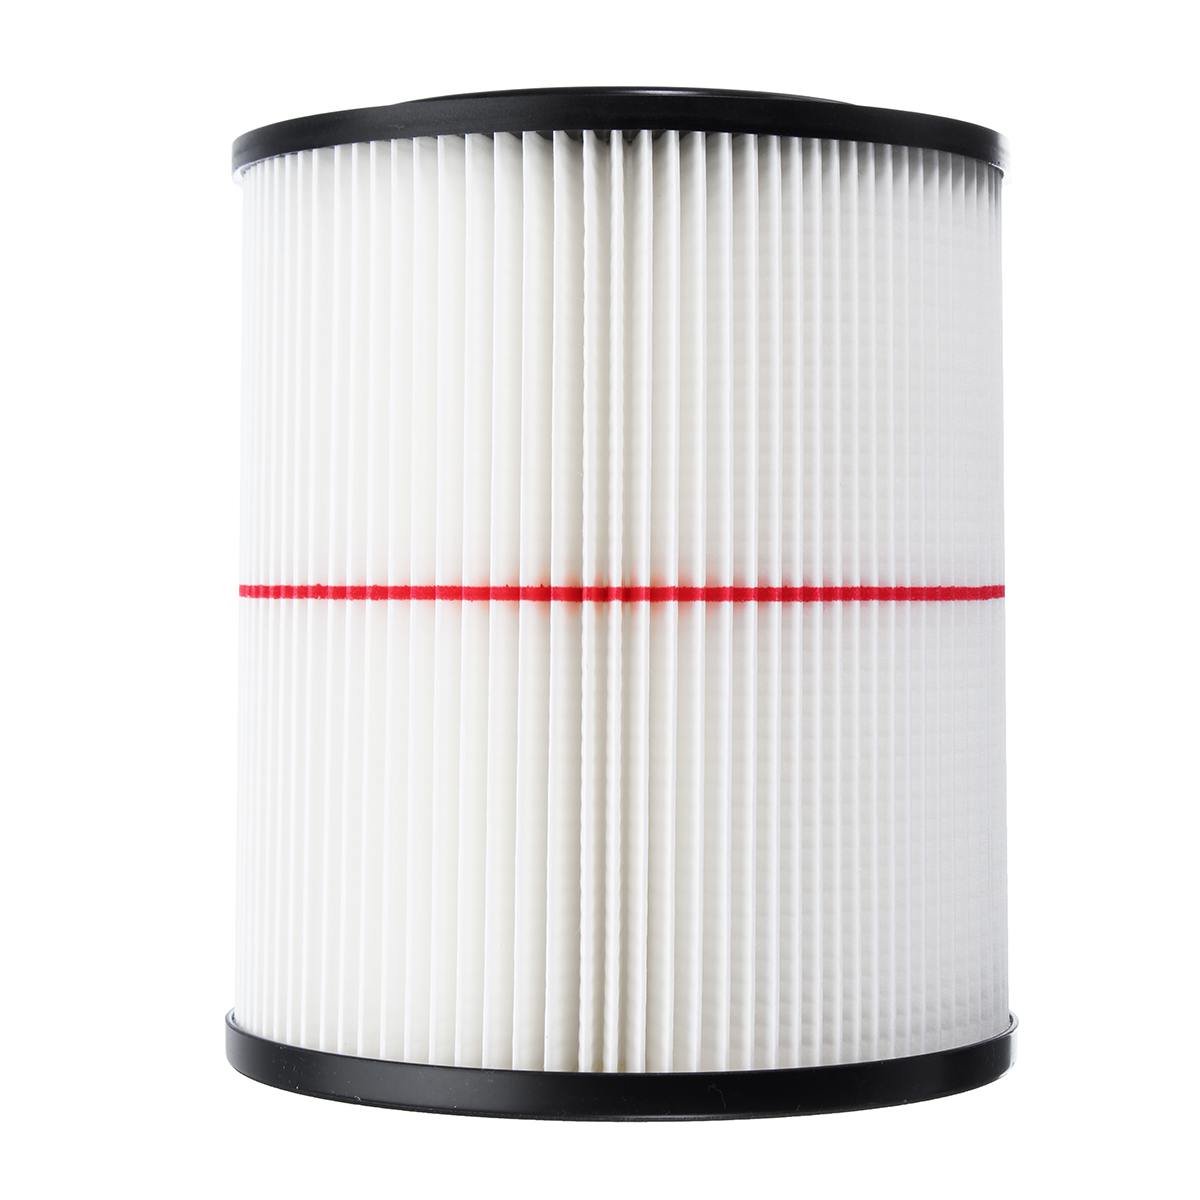 17816 Filter For Craftsman Shop Vac 9-17816 Wet Dry Vac Filter For Shop Vacuum Cleaners